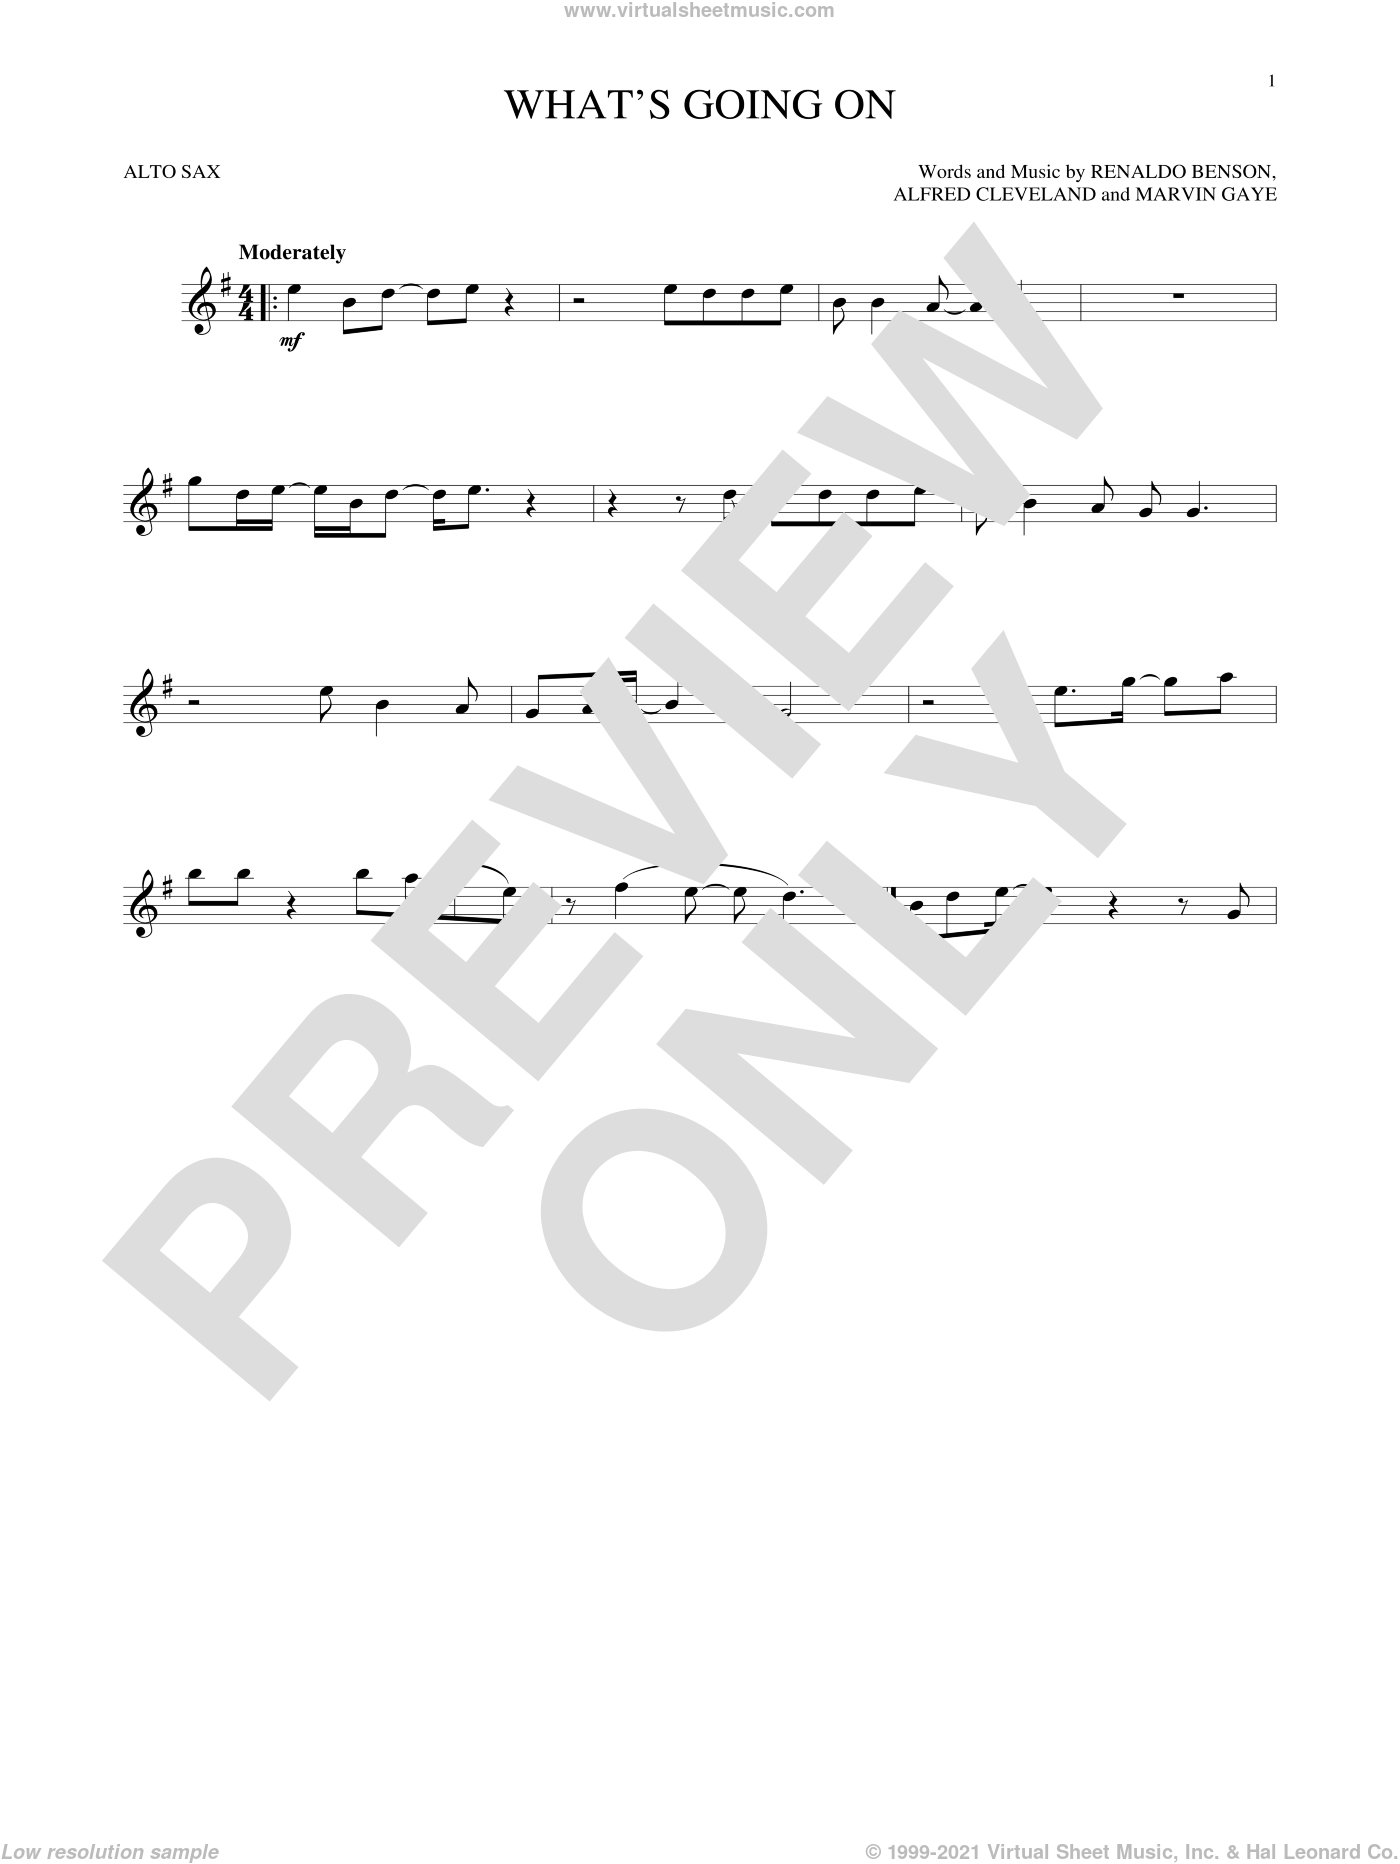 What's Going On sheet music for alto saxophone solo by Marvin Gaye, Al Cleveland and Renaldo Benson, intermediate